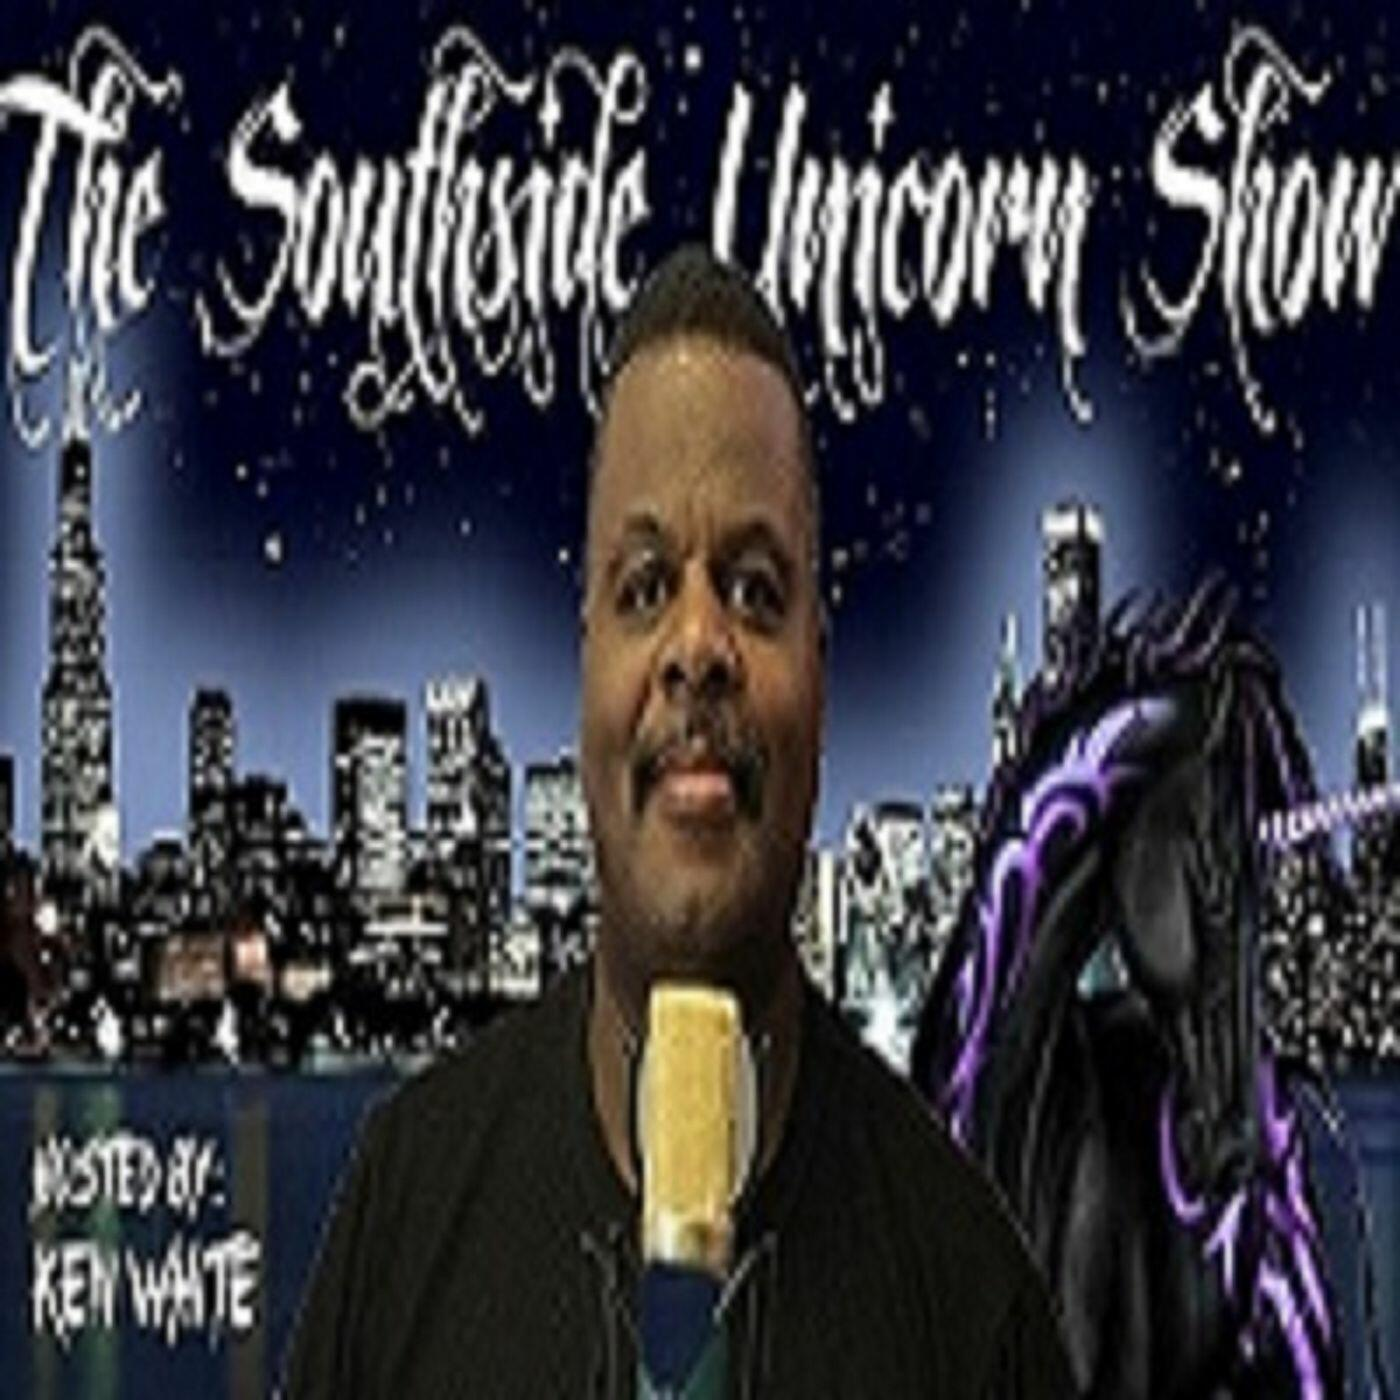 Listen to the The SouthSide Unicorn Show Episode - Military Monday Saluting Veterans Day on iHeartRadio | iHeartRadio